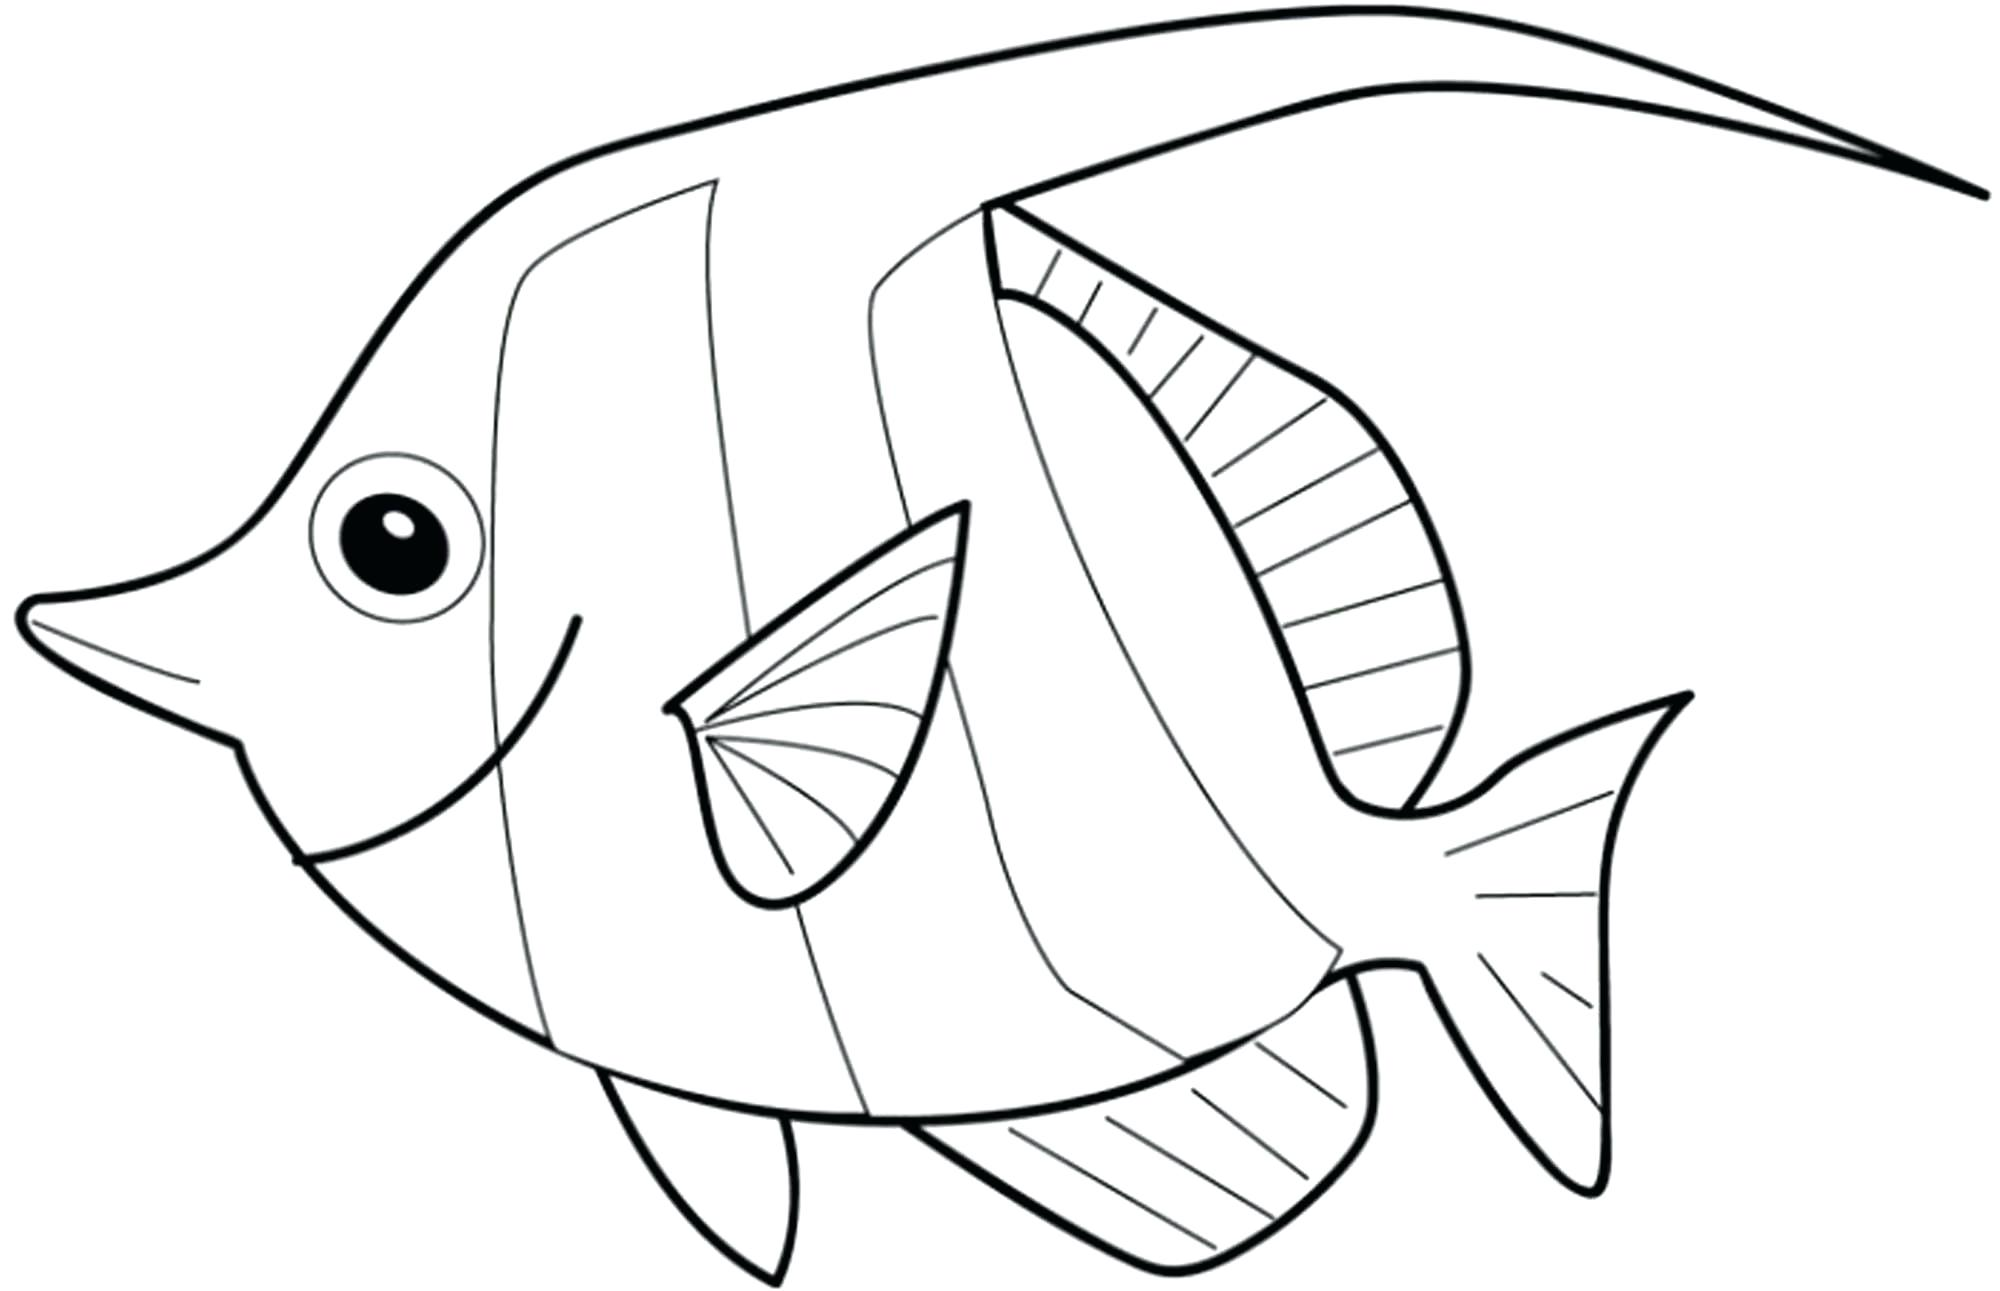 2000x1291 Empty Fish Tank Coloring Page 5 Enchanting Pretty Background